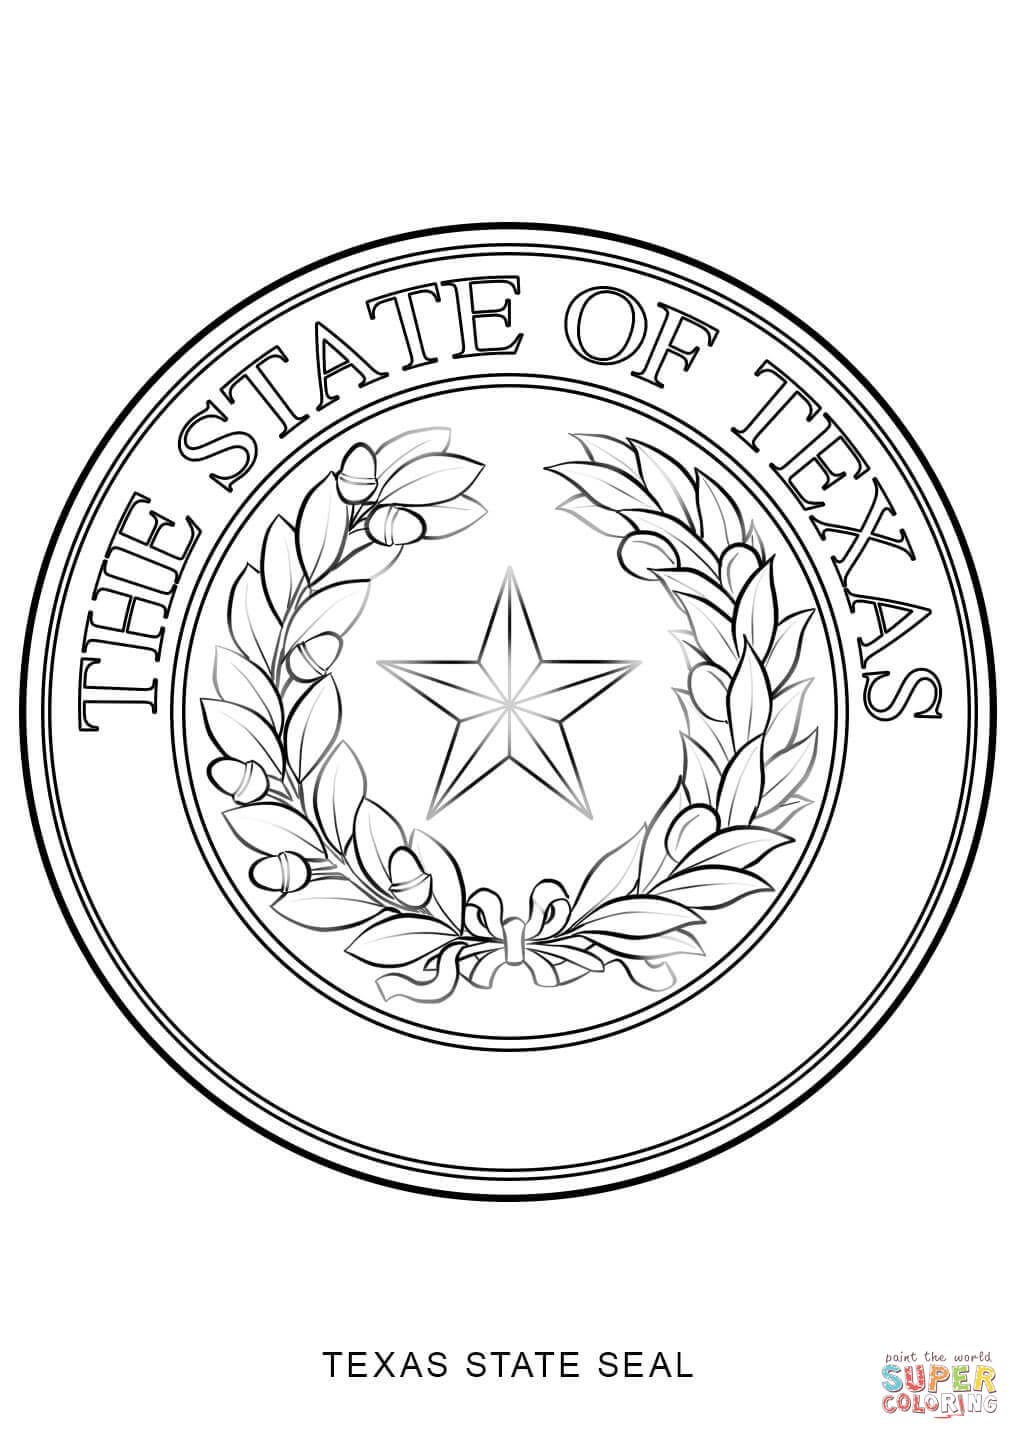 texas symbols coloring pages texas state outline coloring page texas symbols state pages coloring symbols texas